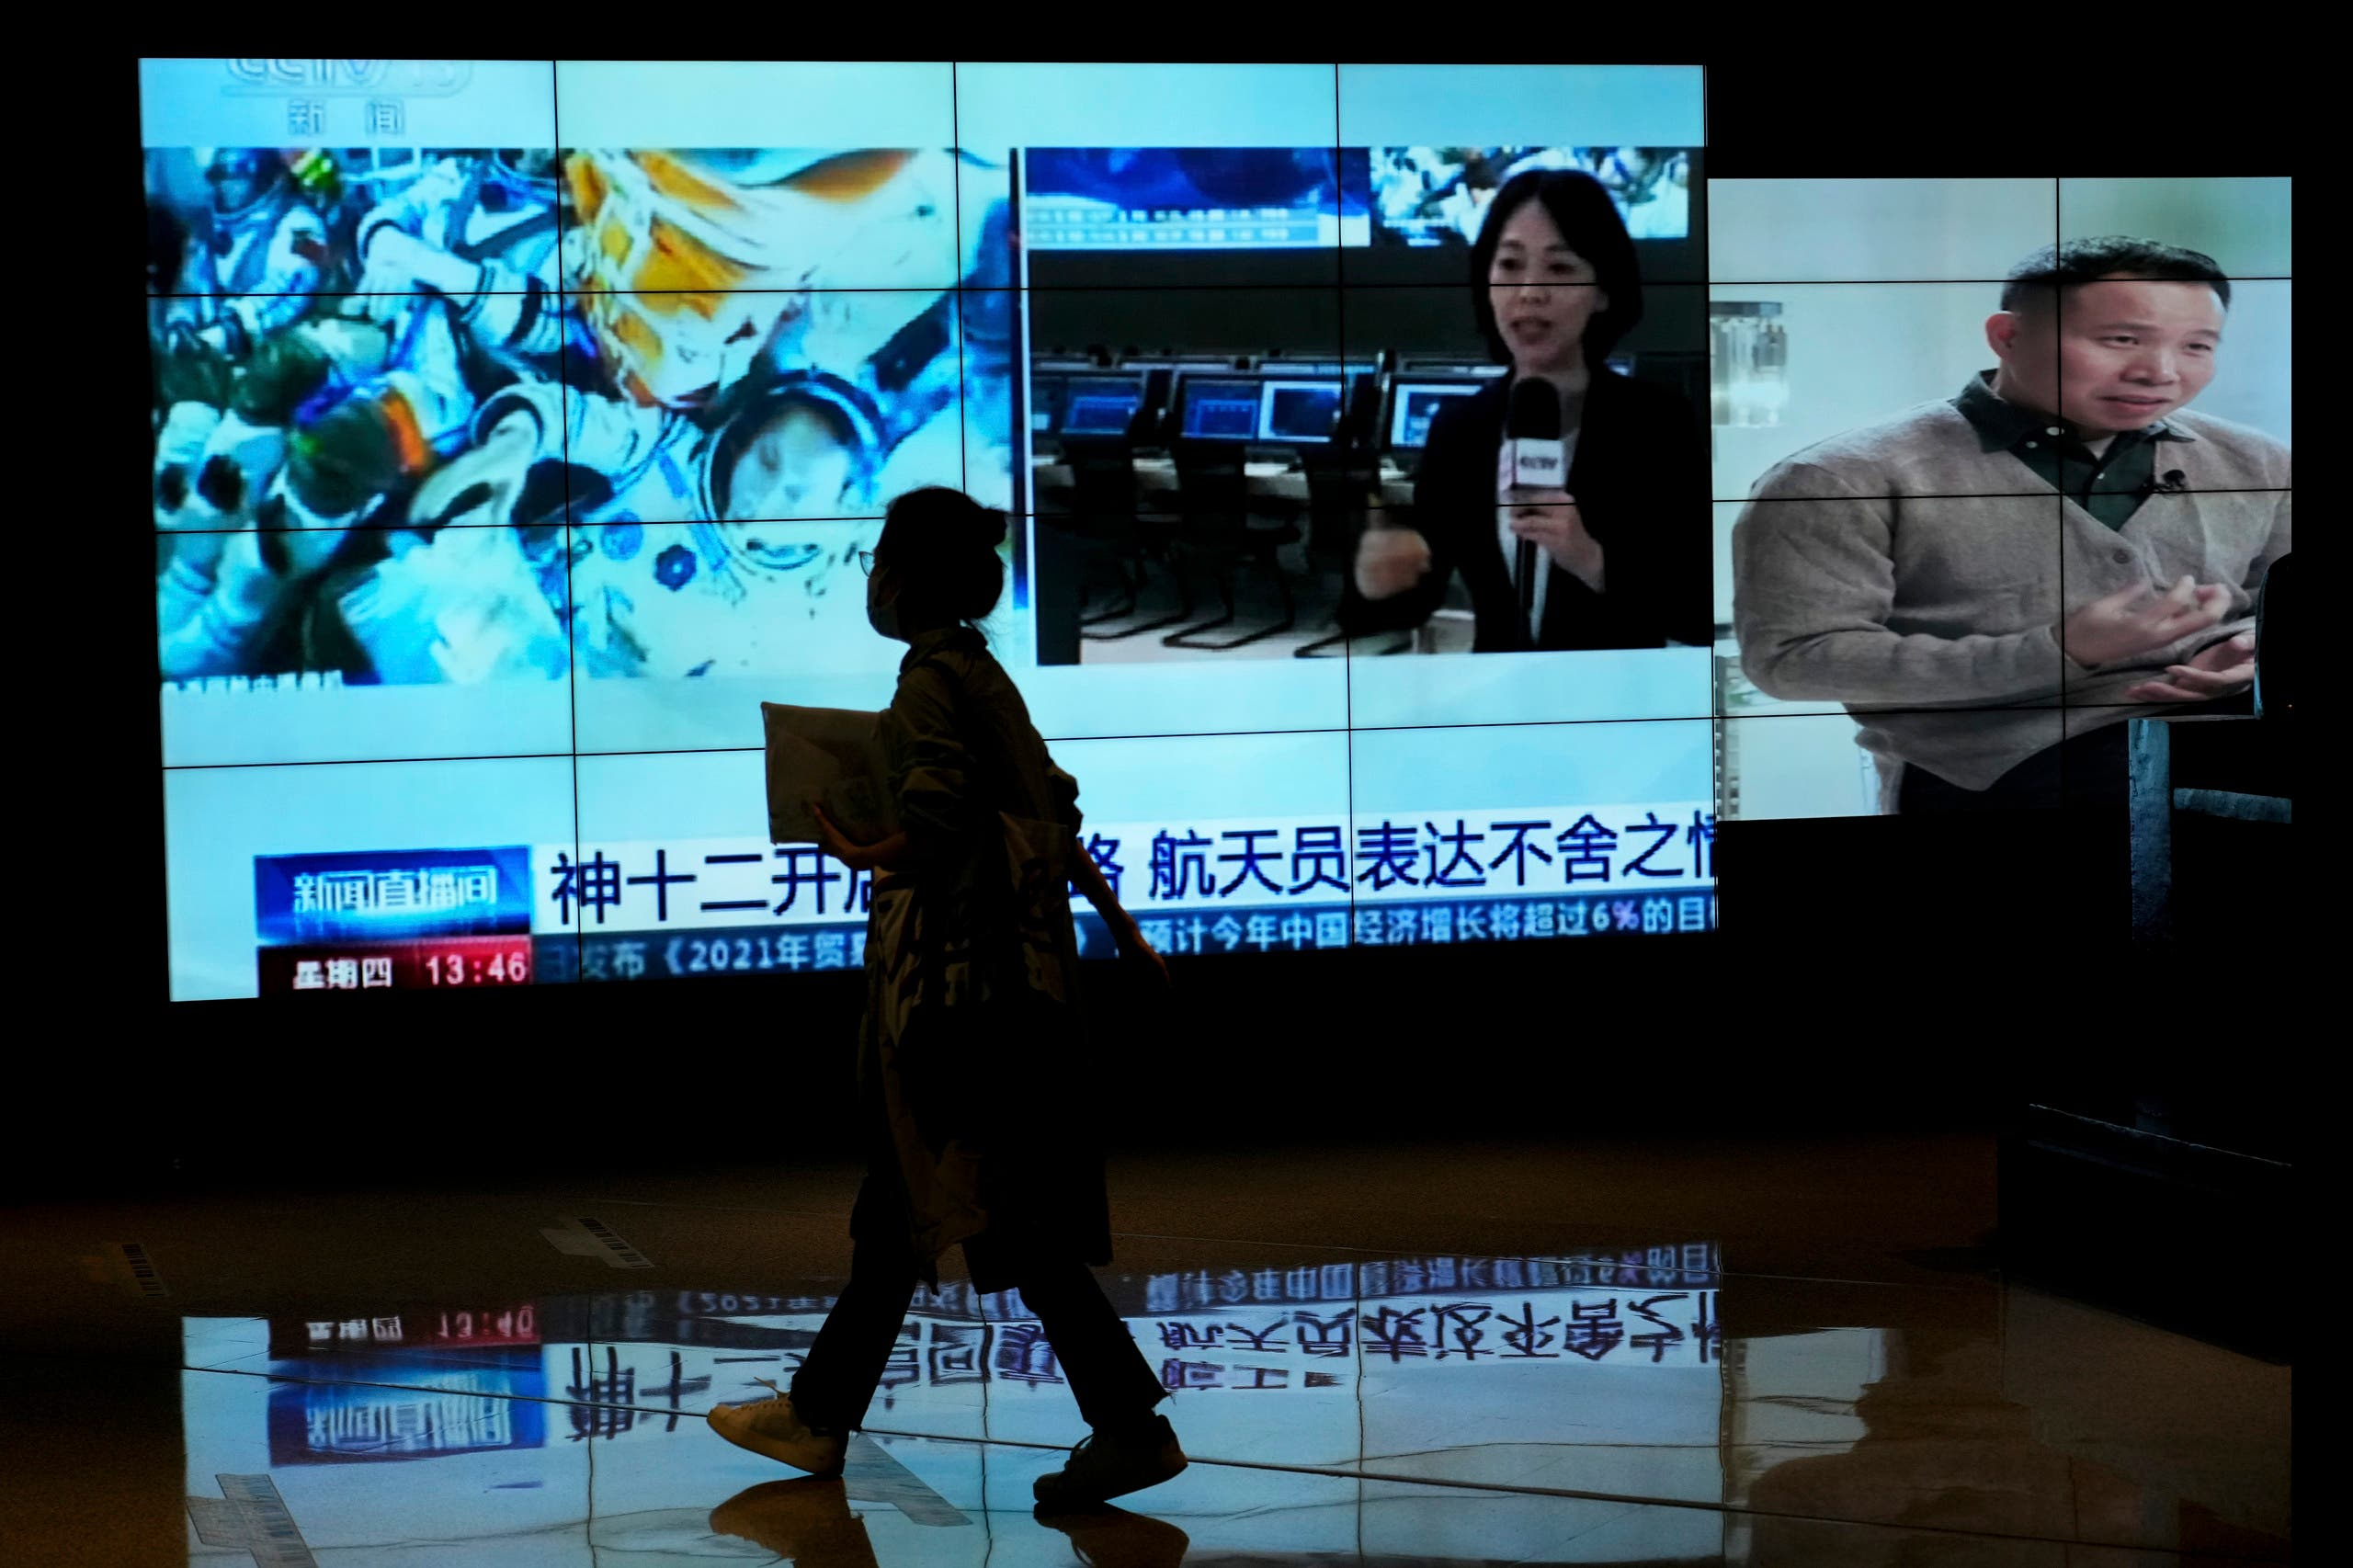 A woman walks by a TV screen showing CCTV broadcasting a news of Chinese astronauts sit inside the Shenzhou-12 manned spacecraft preparing to return to earth, at a shopping mall in Beijing. (File photo: AP)